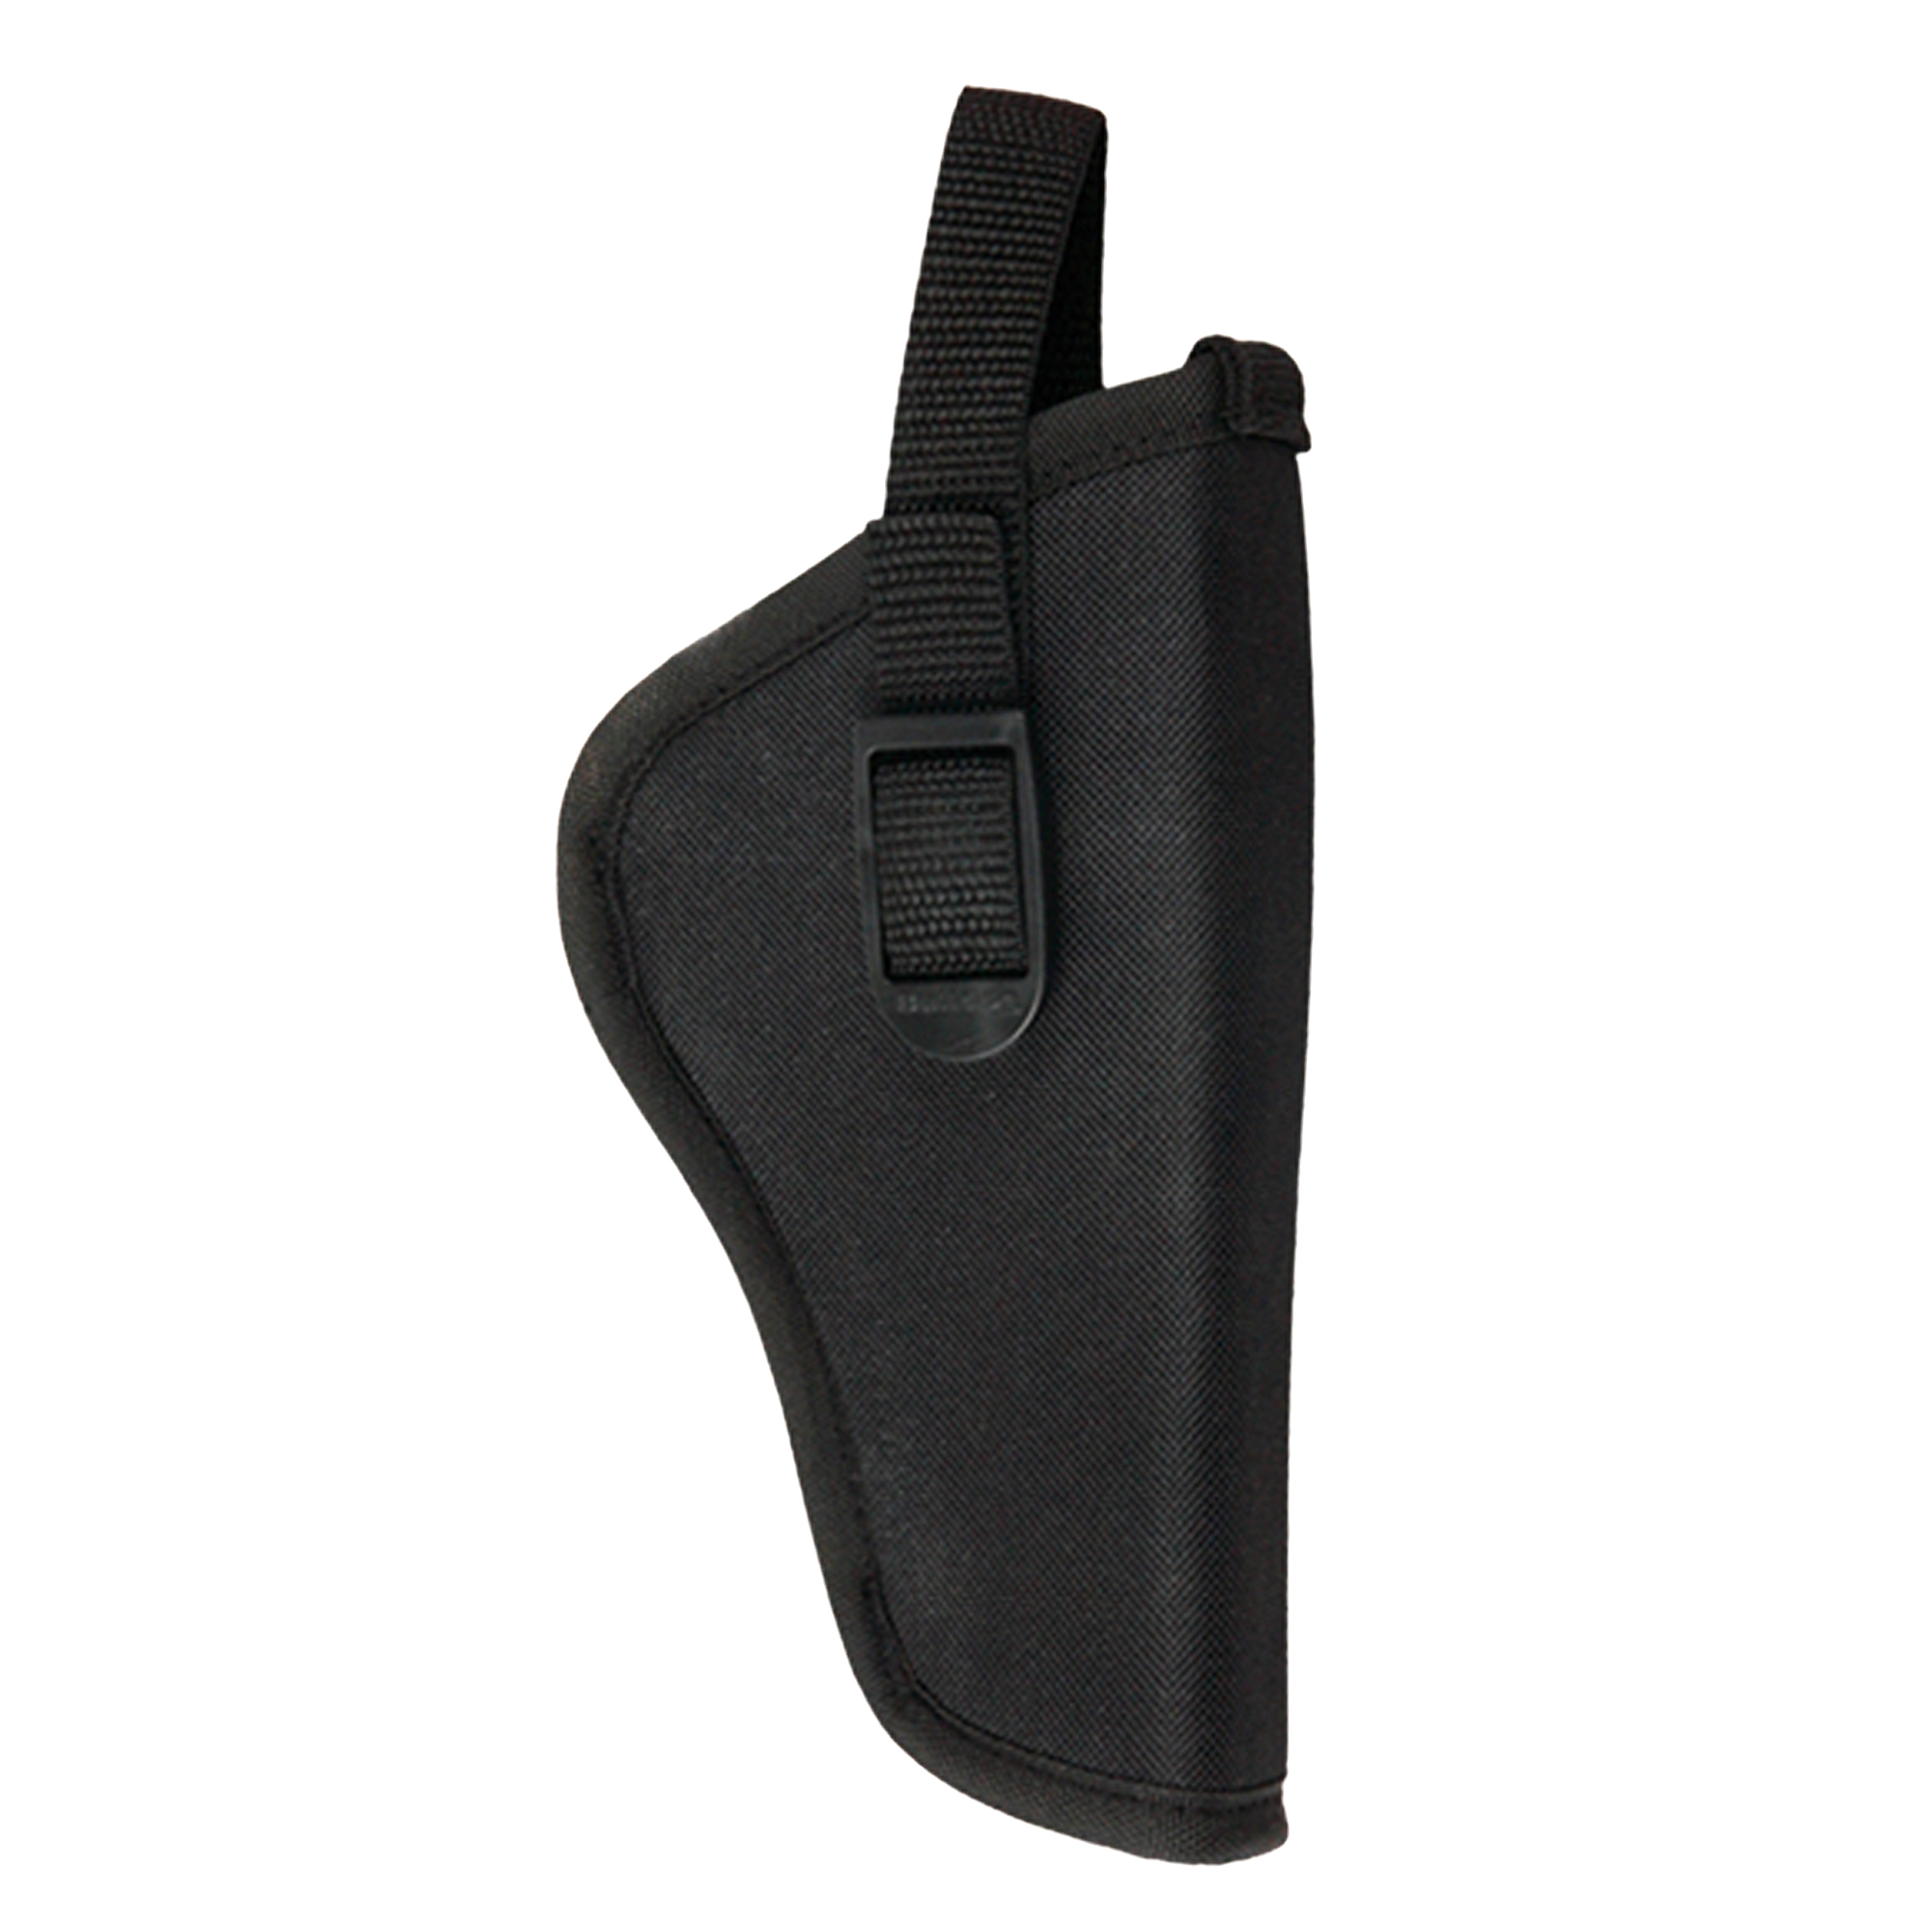 """Durable Nylon Water-Resistant Outer Shell & Top Grade Padding Provides The Ultimate Fit"""" Comfort & Protection For You & Your Pistol. Features a deluxe molded thumb break snap and belt loop."""